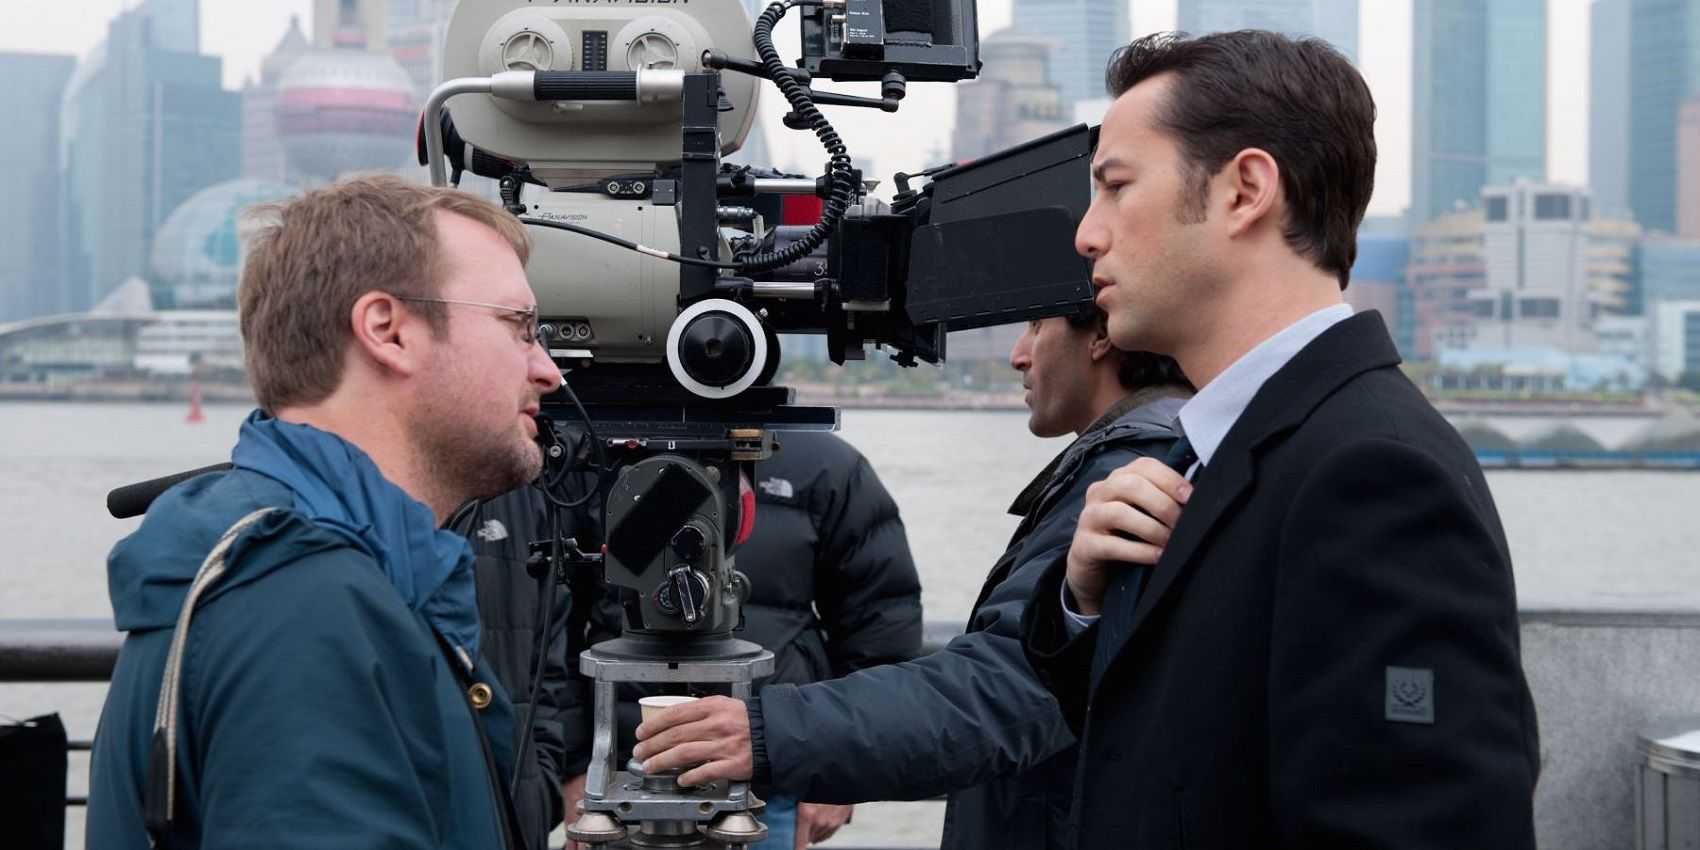 Director Rian Johnson on the set of Looper